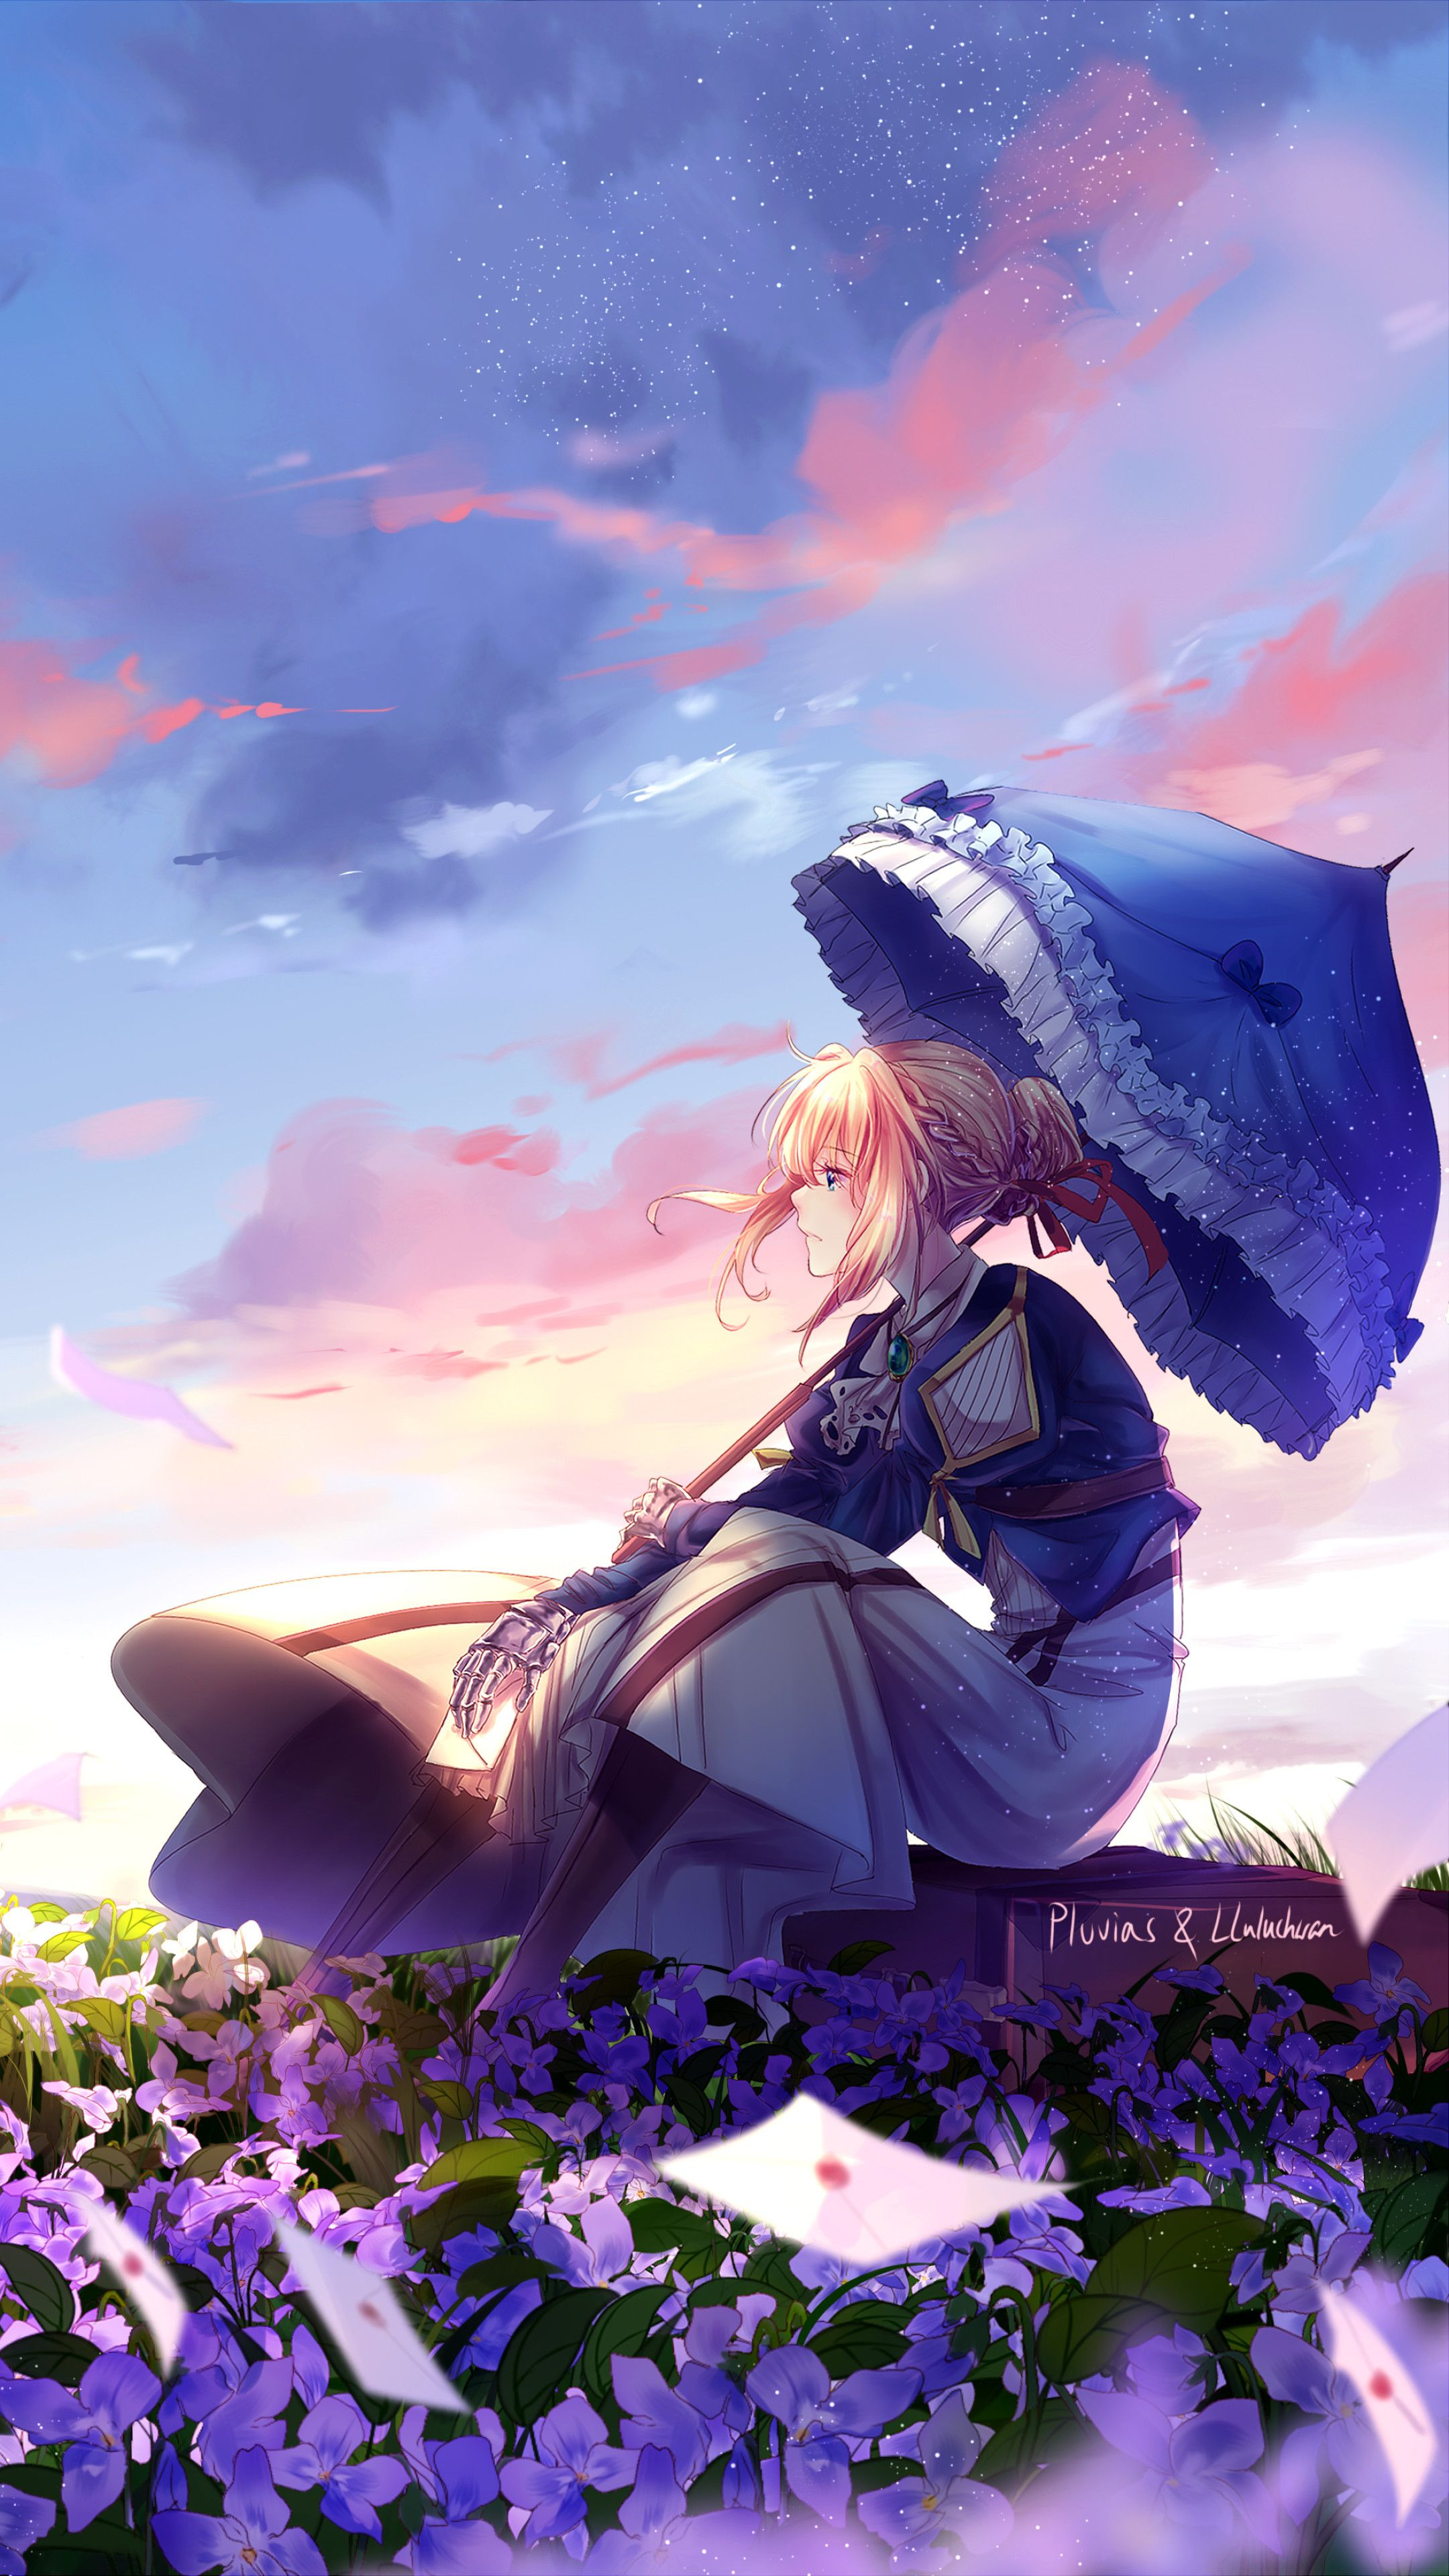 Anime Art Wallpaper Phone 2160x3840 Anime Violet Evergarden Art Sony Xperia X Xz Z5 Anime In 2020 Violet Evergarden Wallpaper Anime Wallpaper Violet Evergarden Anime